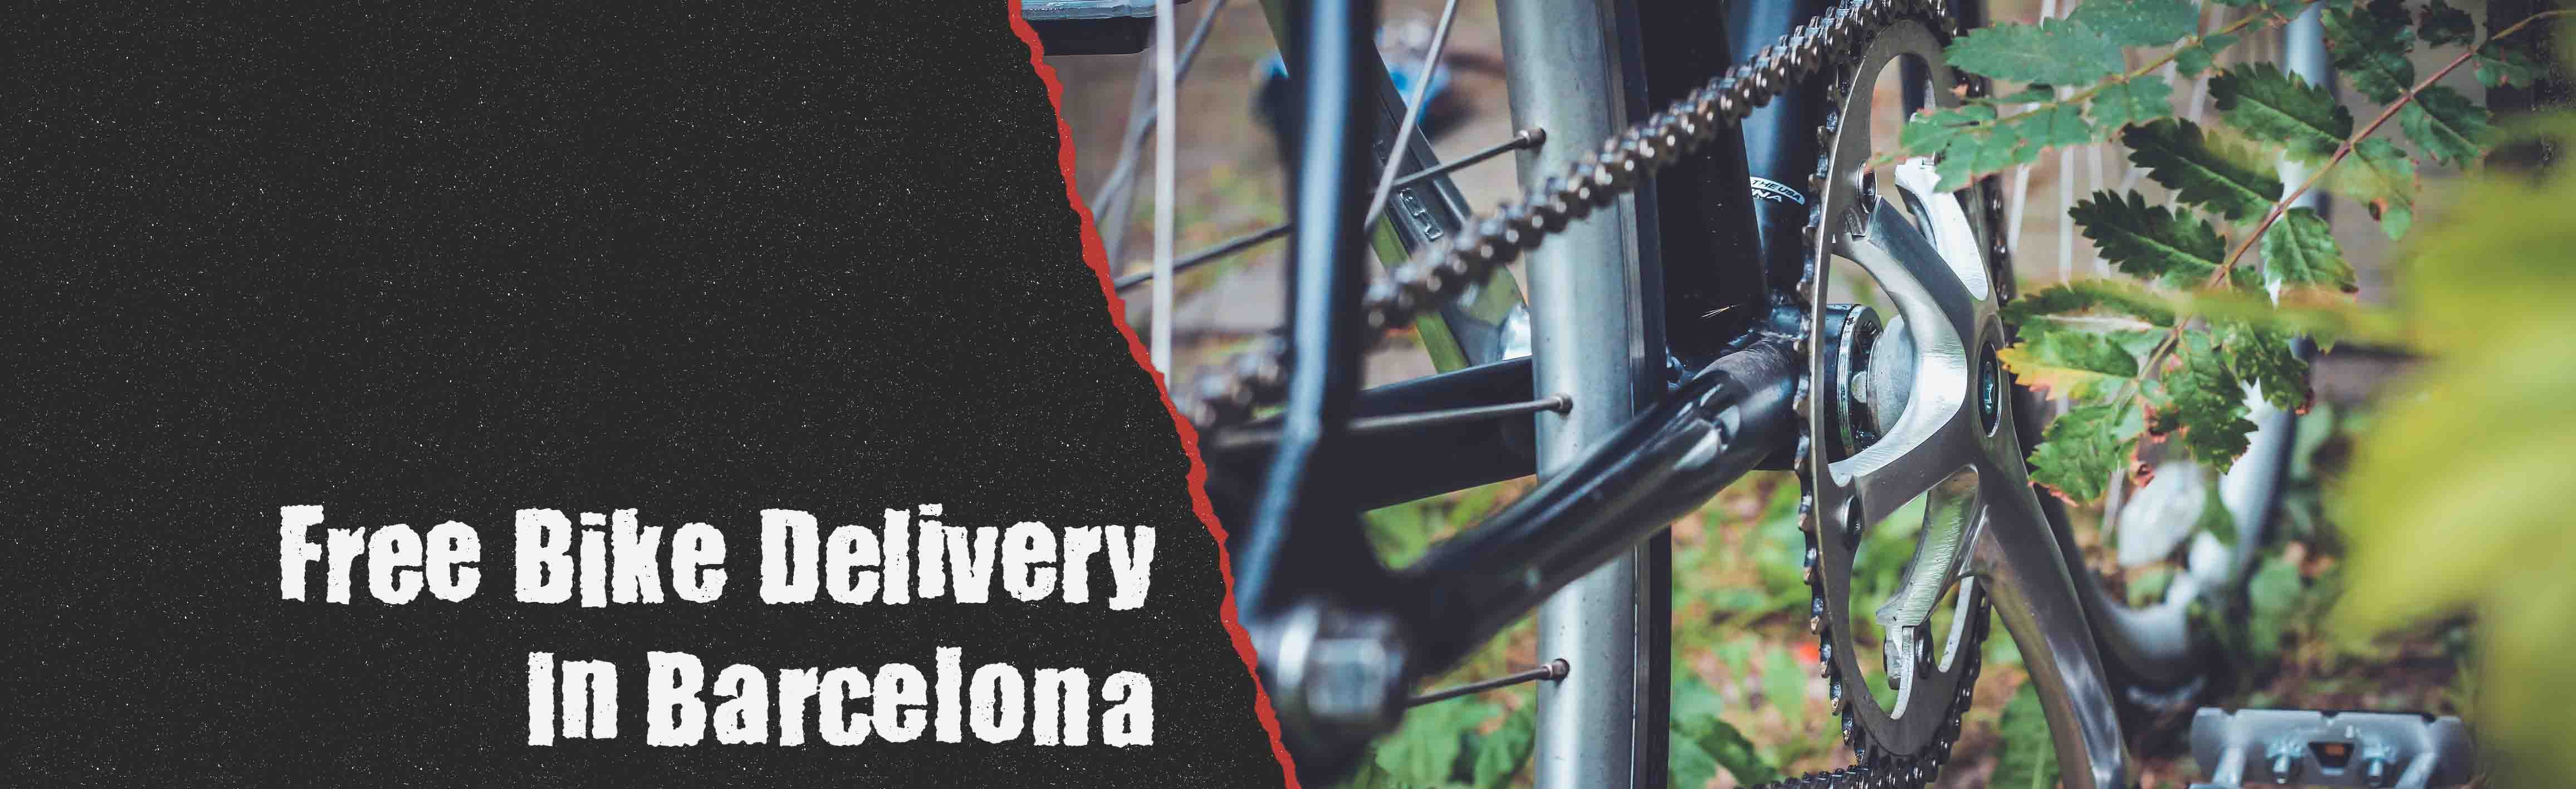 free bike delivery in Barcelona